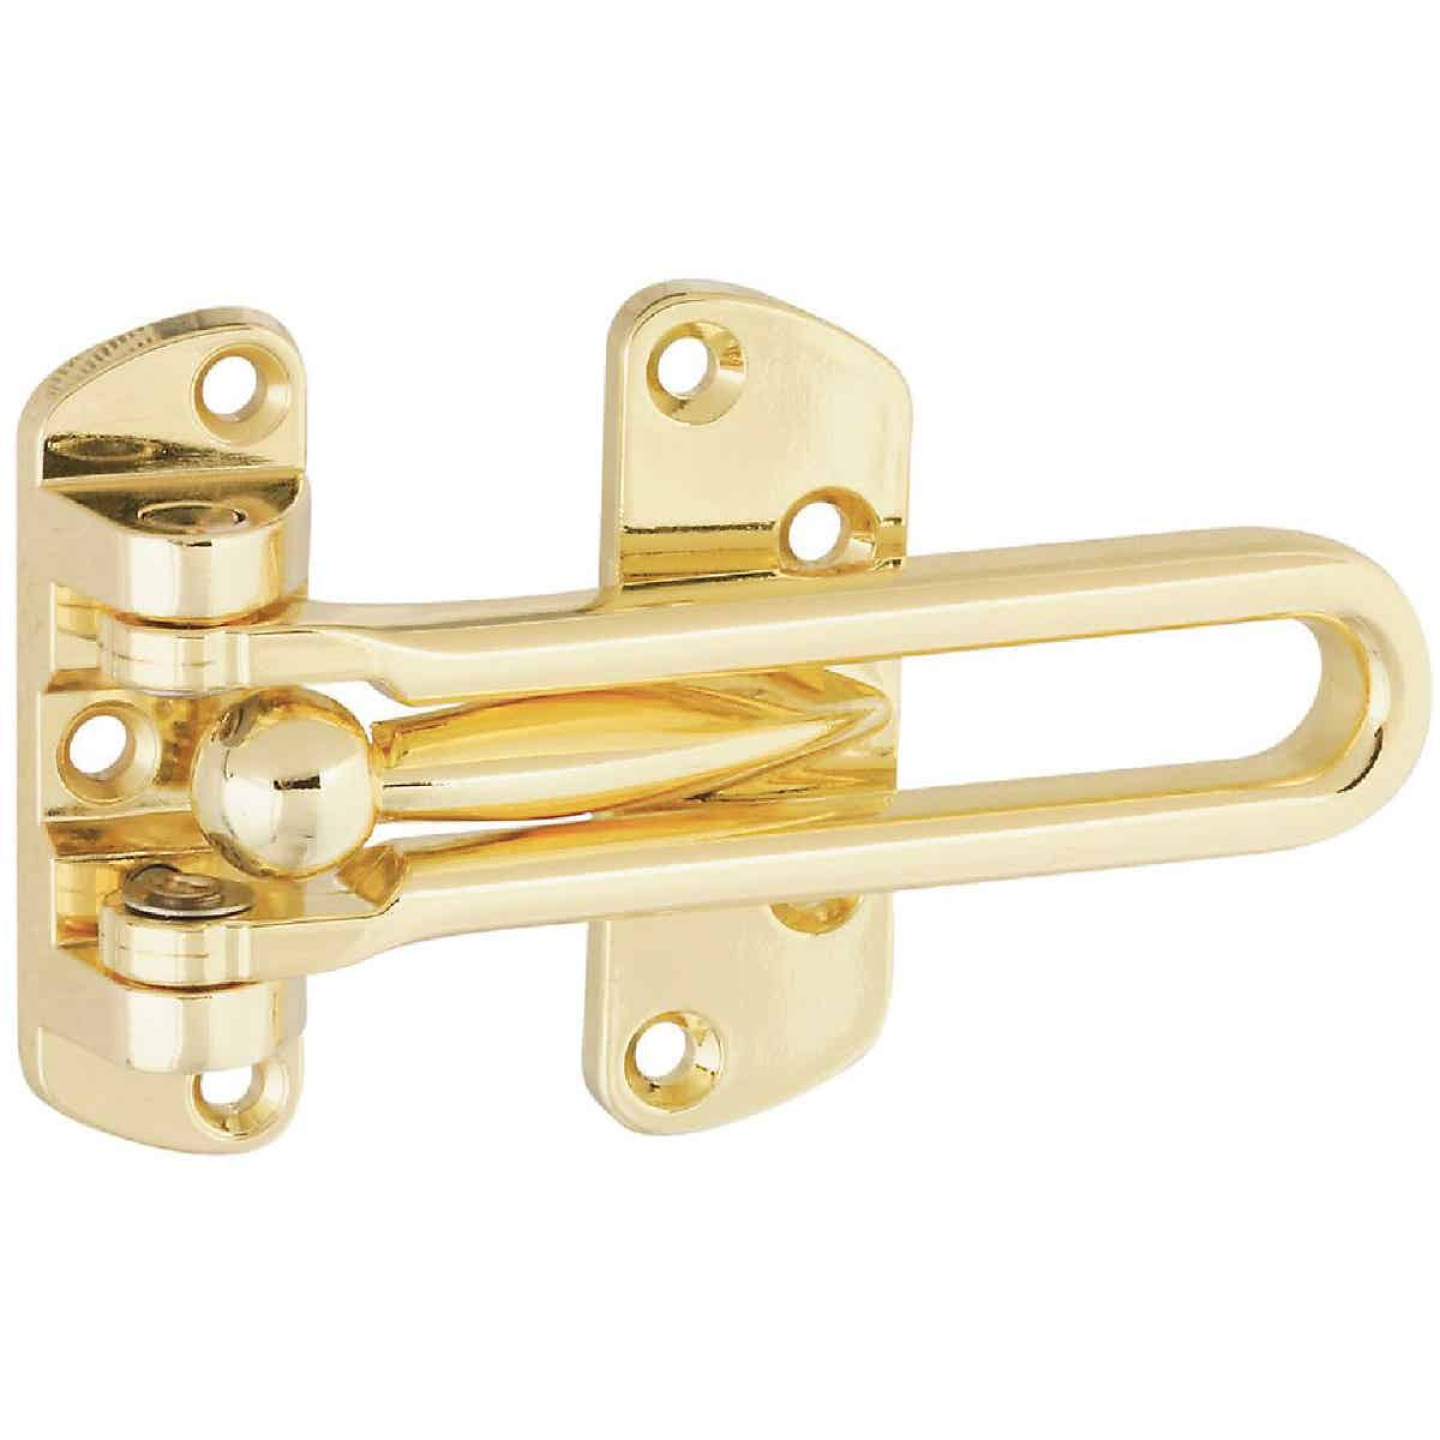 National Polished Brass Decorative Door Security Guard Image 1